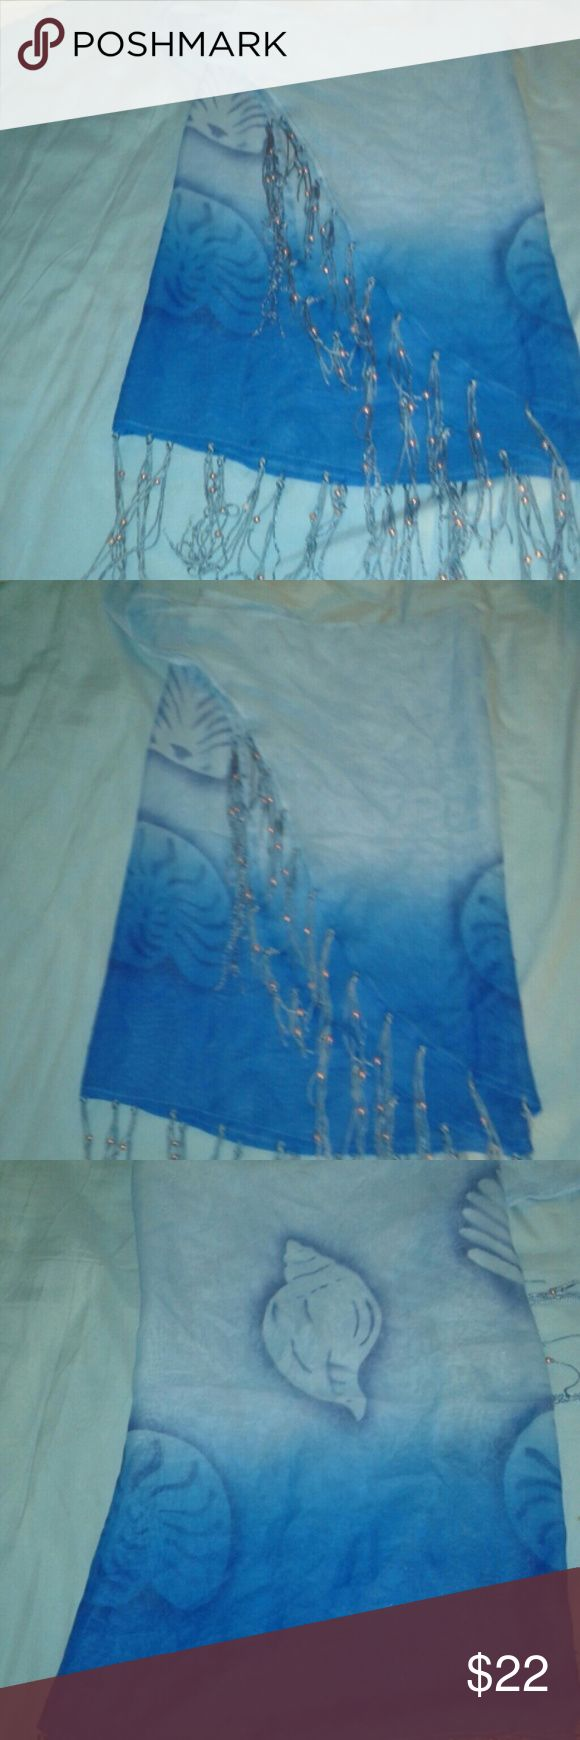 Skirt swimsuit cover up A pretty aqua and beaded skirt swimsuit cover up. Ready for spring?? Skirts Mini